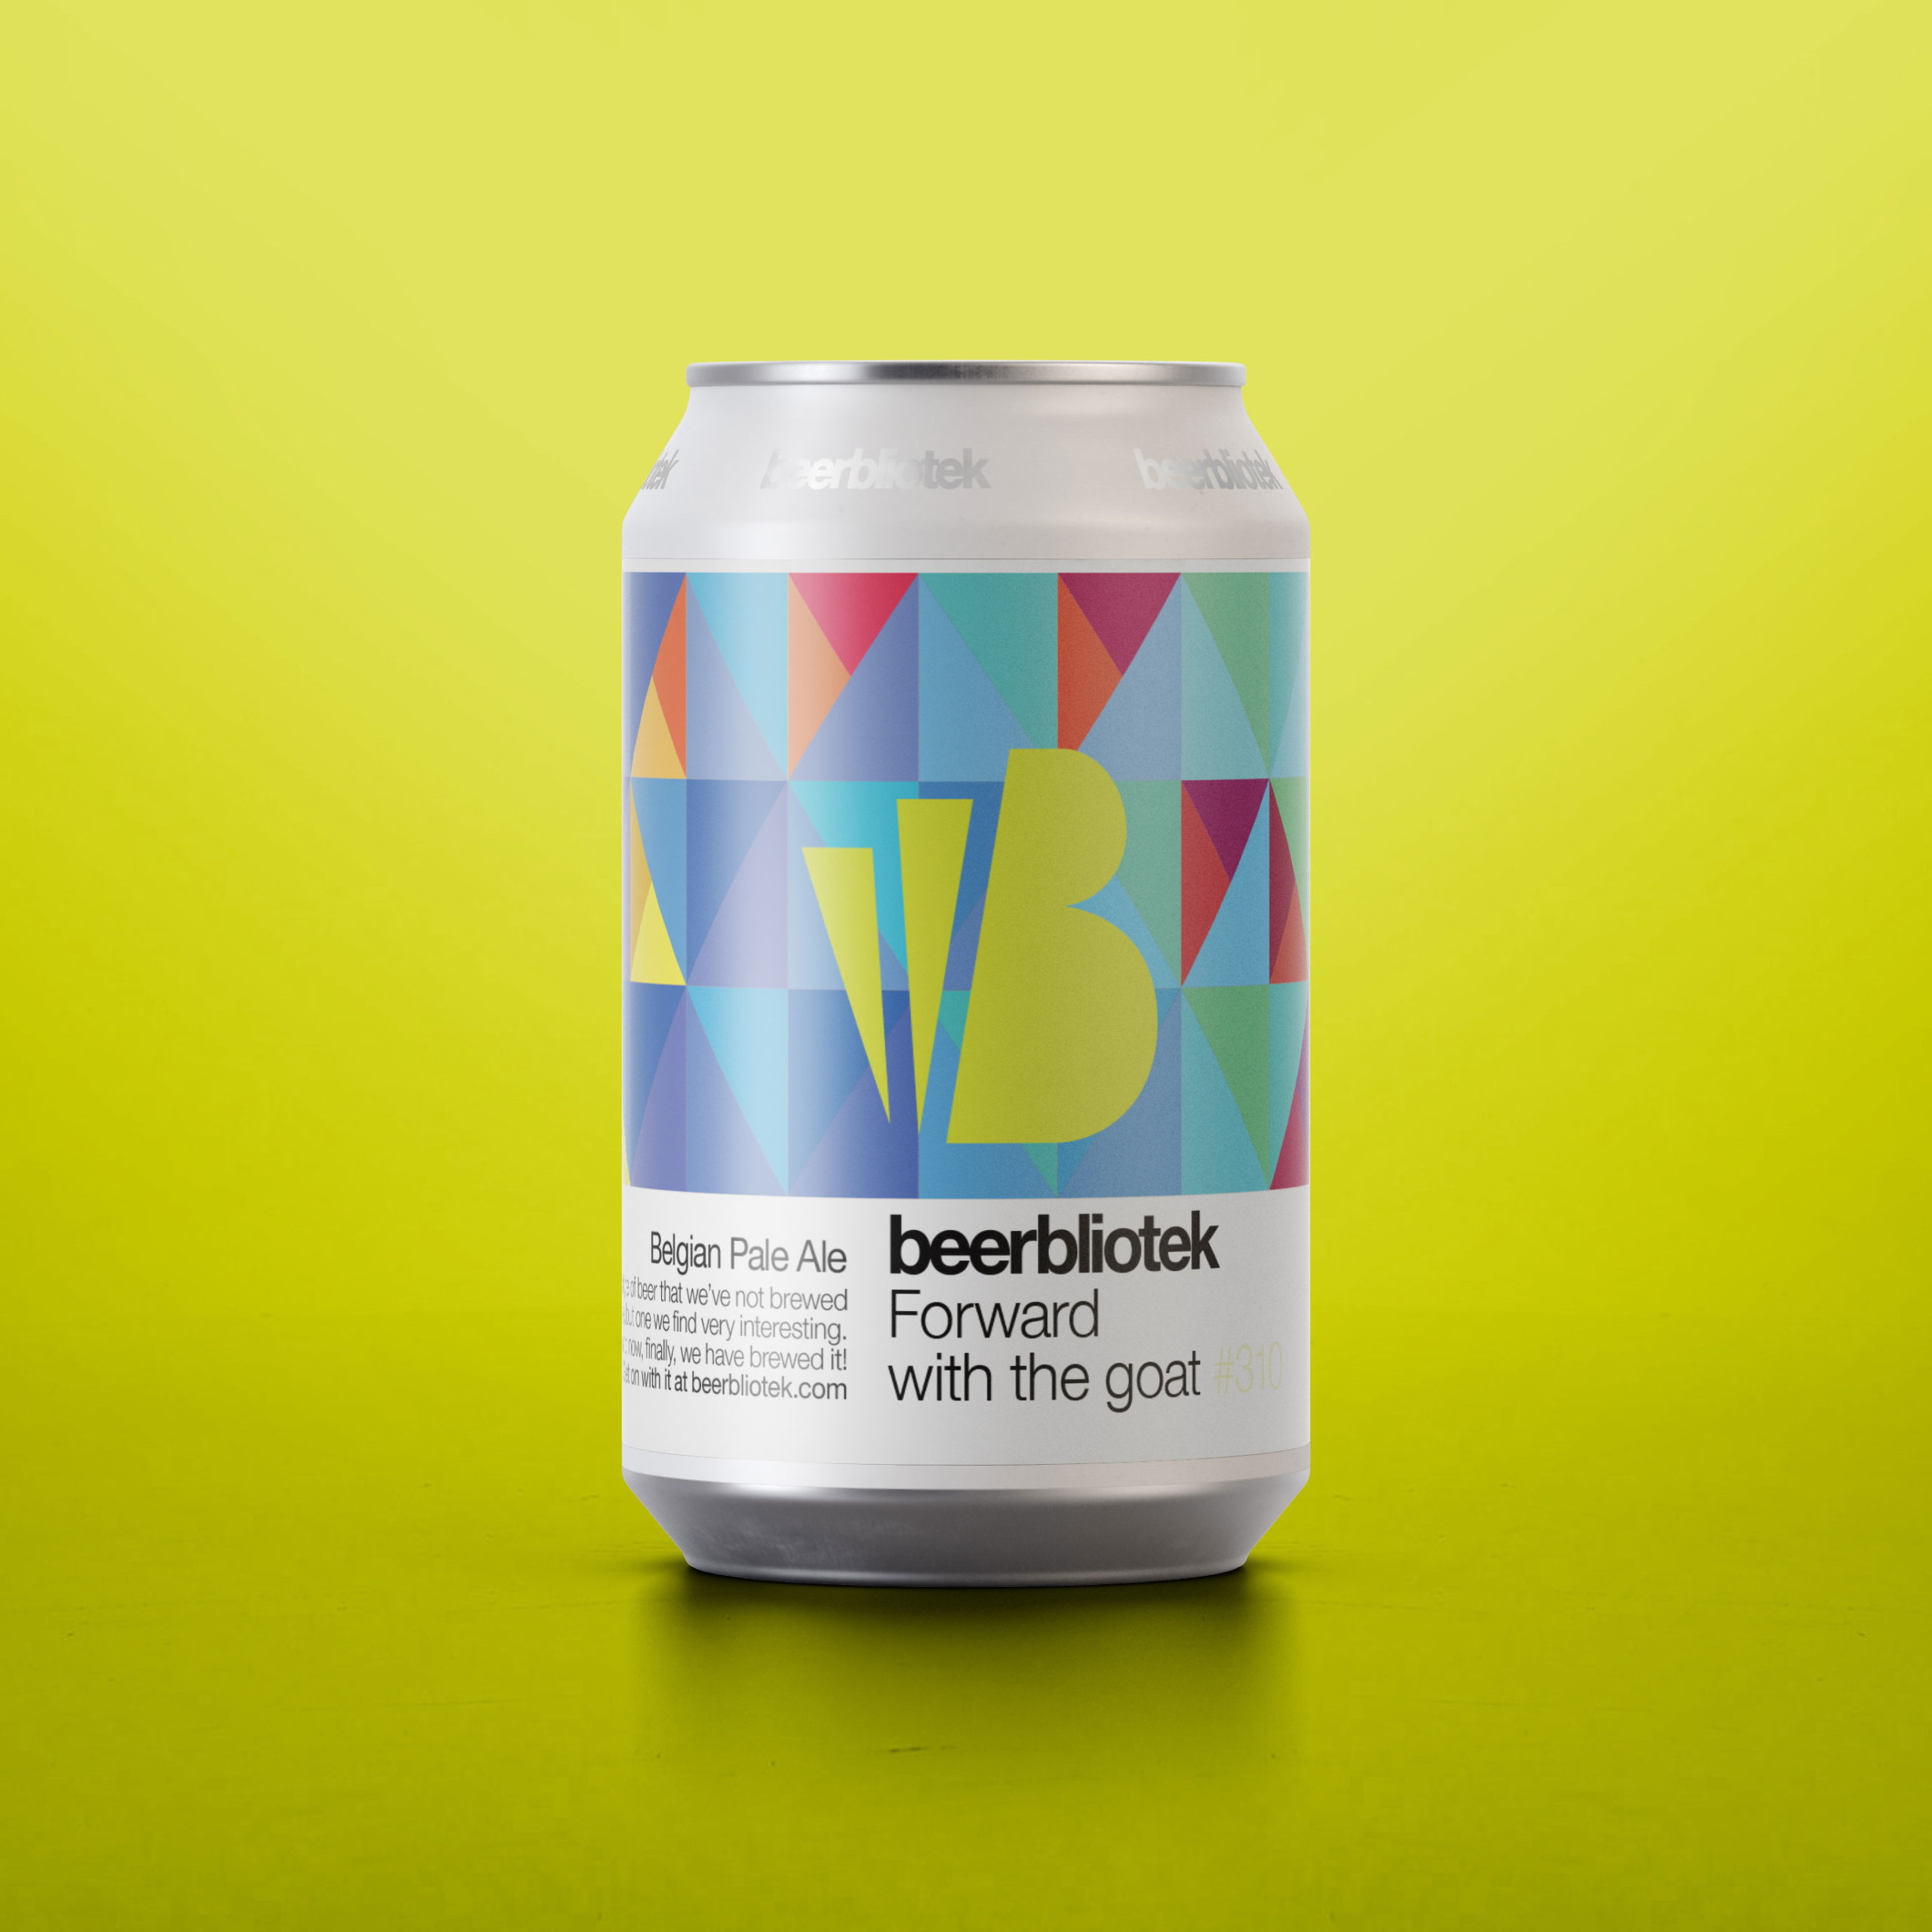 A marketing can packshot of Forward with the goat, a Belgian Pale Ale, brewed by Swedish Craft Brewery Beerbliotek.